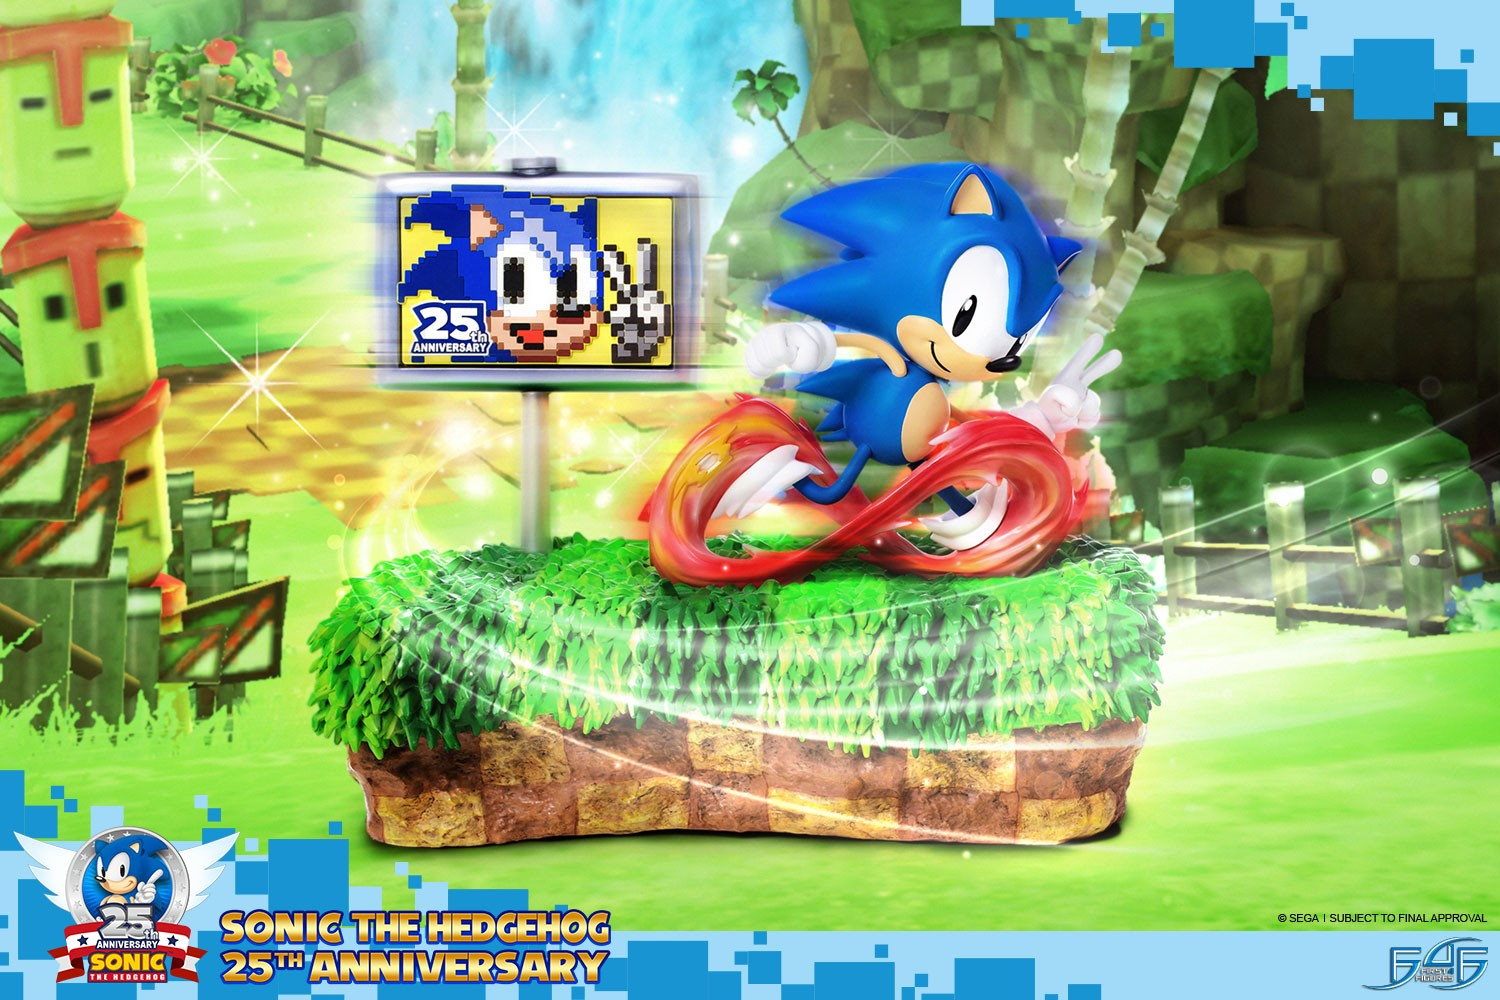 Sonic The Hedgehog 25th Anniversary (Regular)